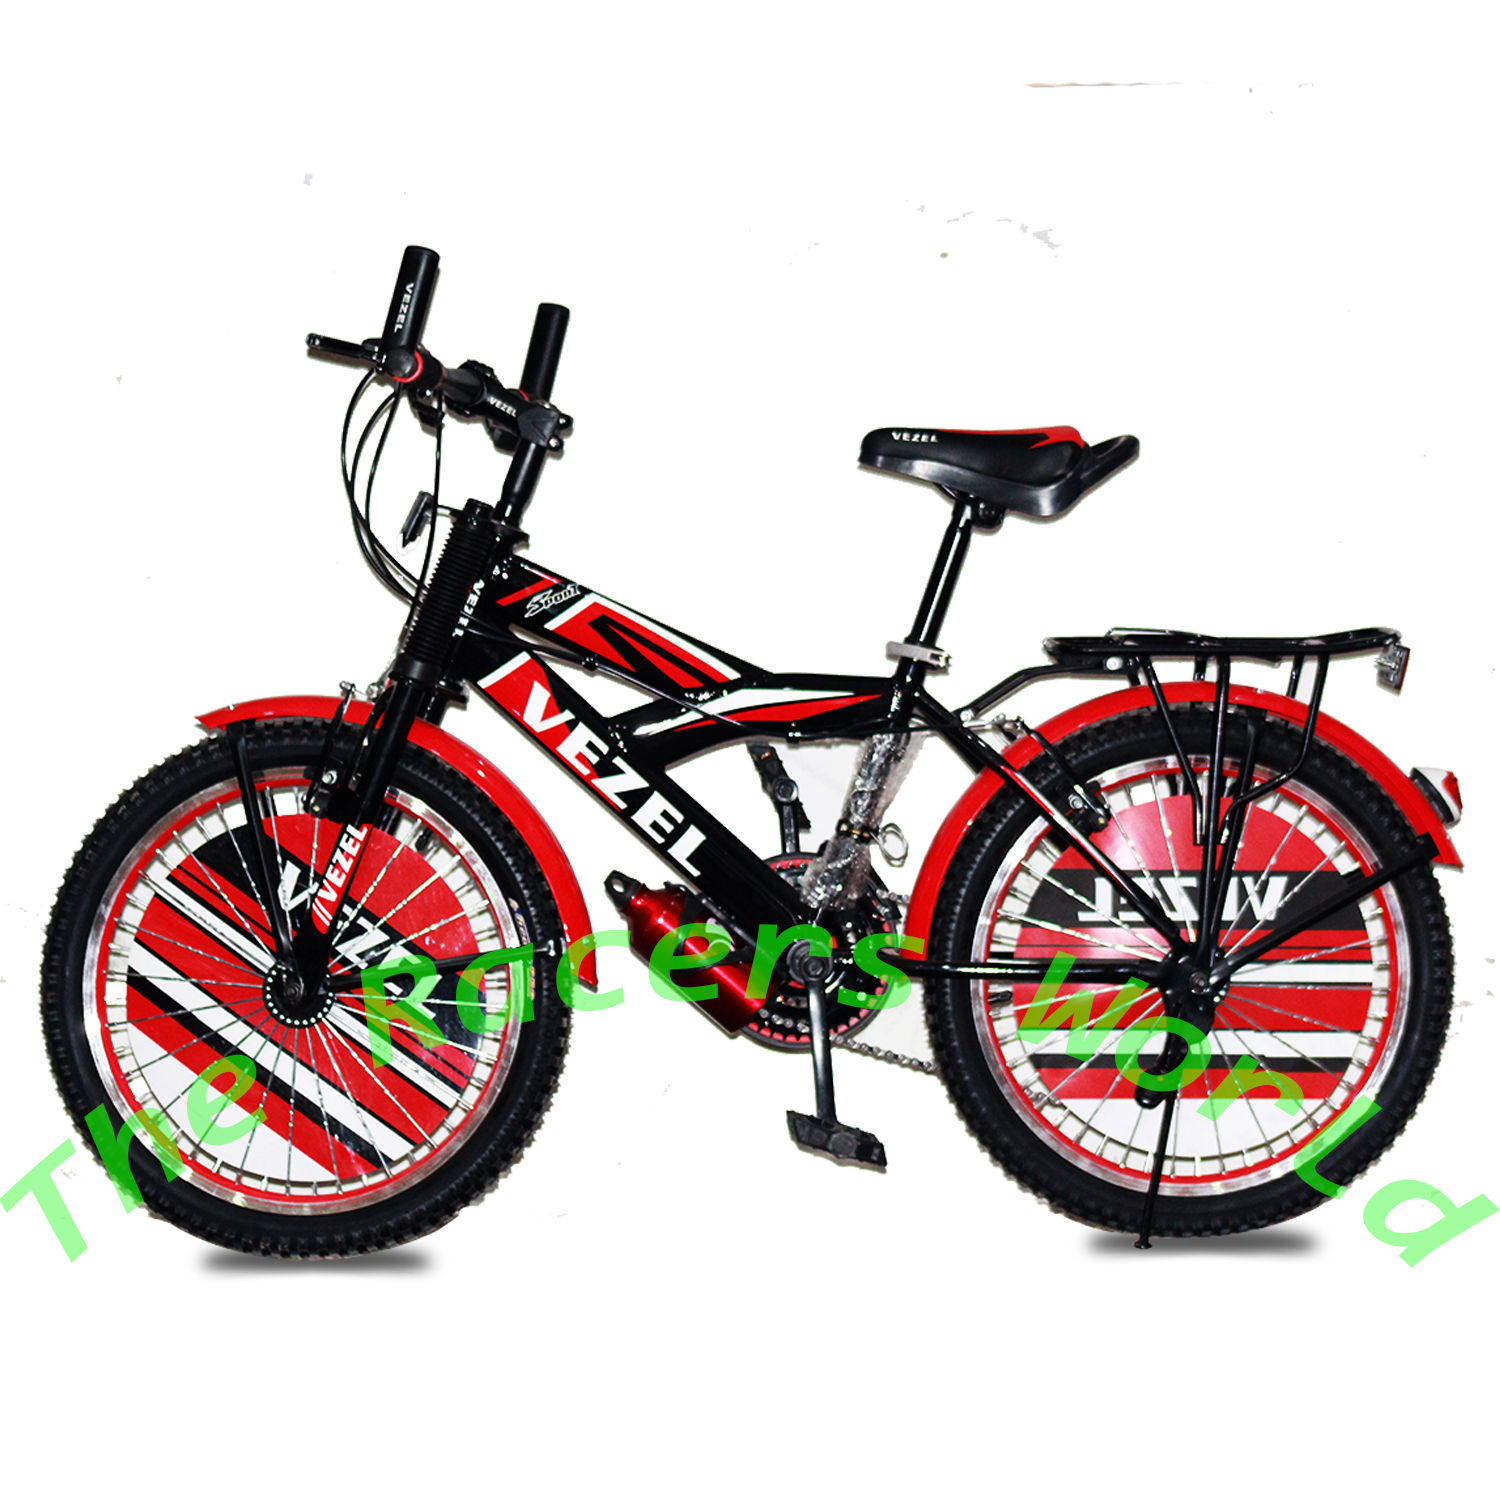 Vezel 20 Inch Professional Sports bike - Bicycle For Boys with Water bottle and Heavy SpokesColor of Your Choice  Product Of Germany with Out Gears Age Range 8-12 Years